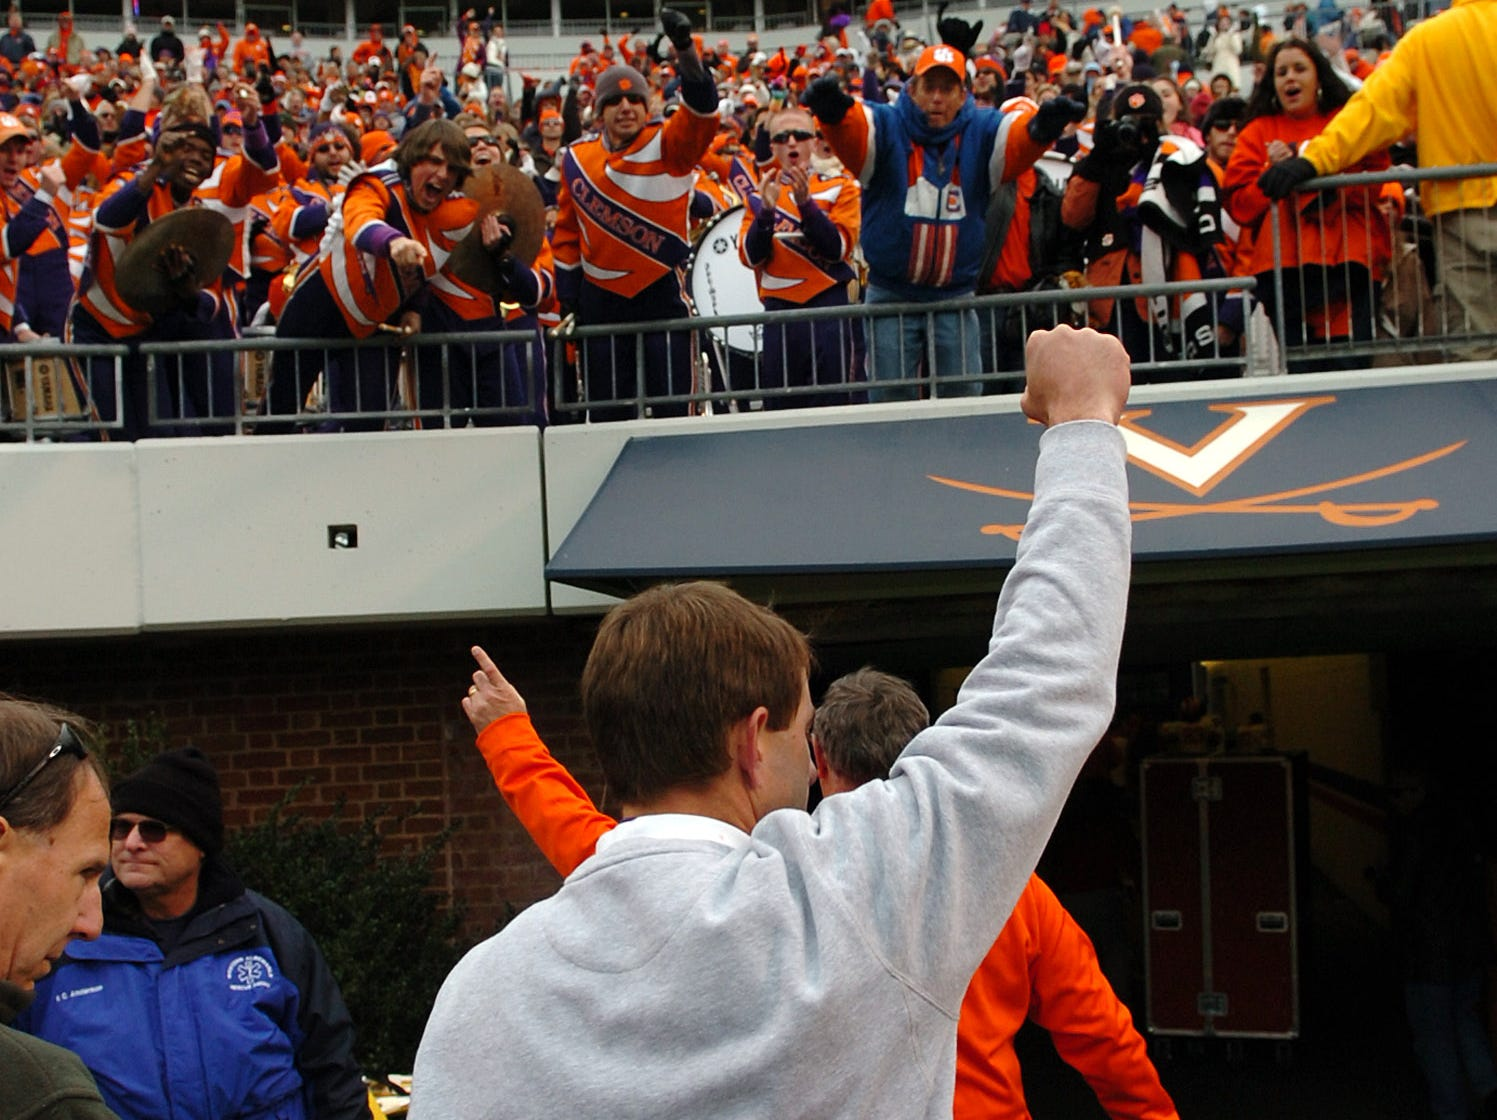 Clemson interim head coach Dabo Swinney gives a fist pump to the Tiger fans as he leaves the field after the Tigers 13-3 win over Virginia Saturday, November 22, 2008 at UVA's Scott Stadium in Charlottesville, Va.